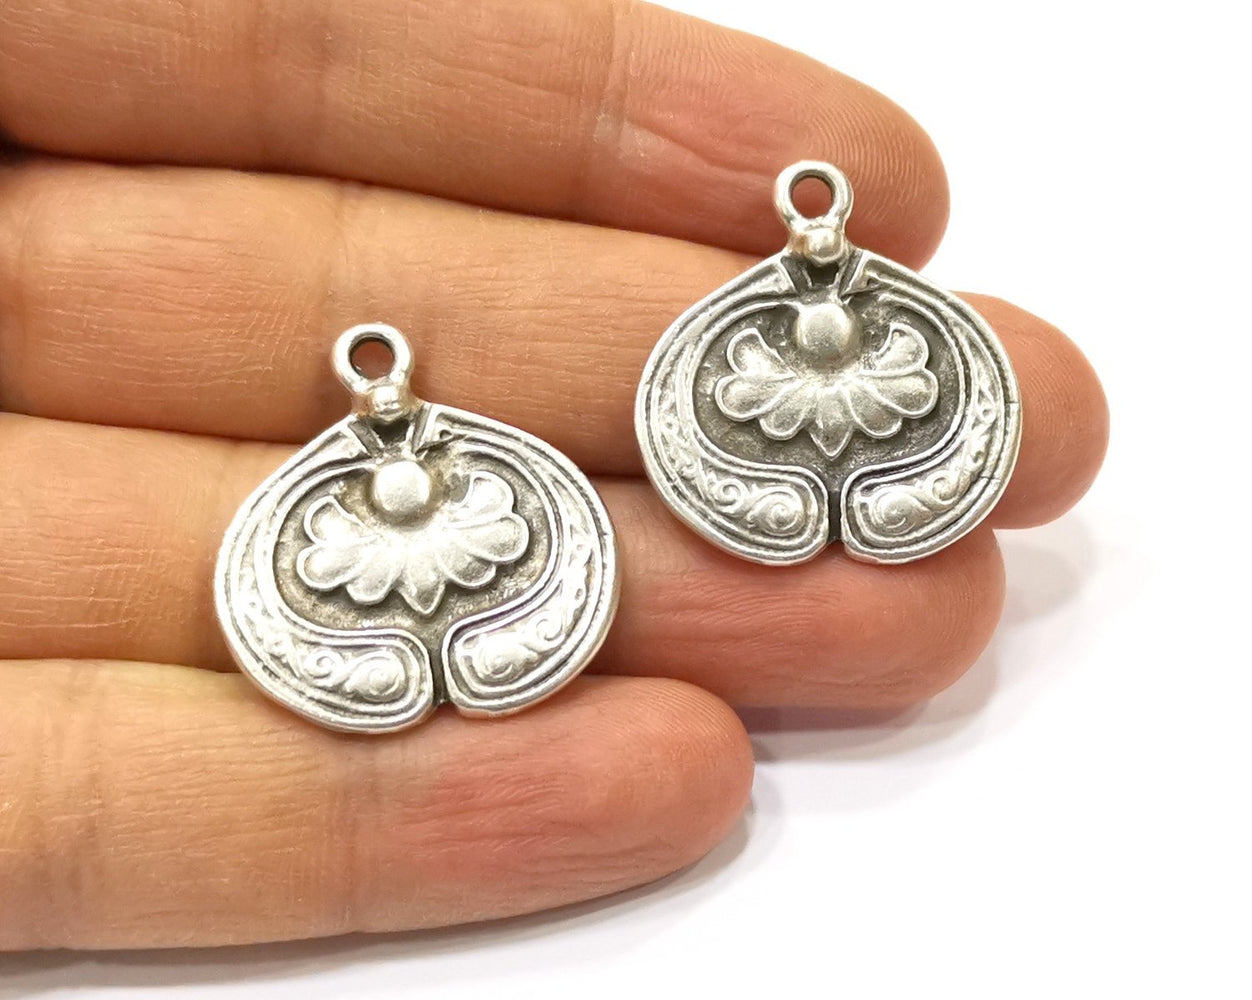 2 Silver Charms Antique Silver Plated Charms (28x27mm)  G16562